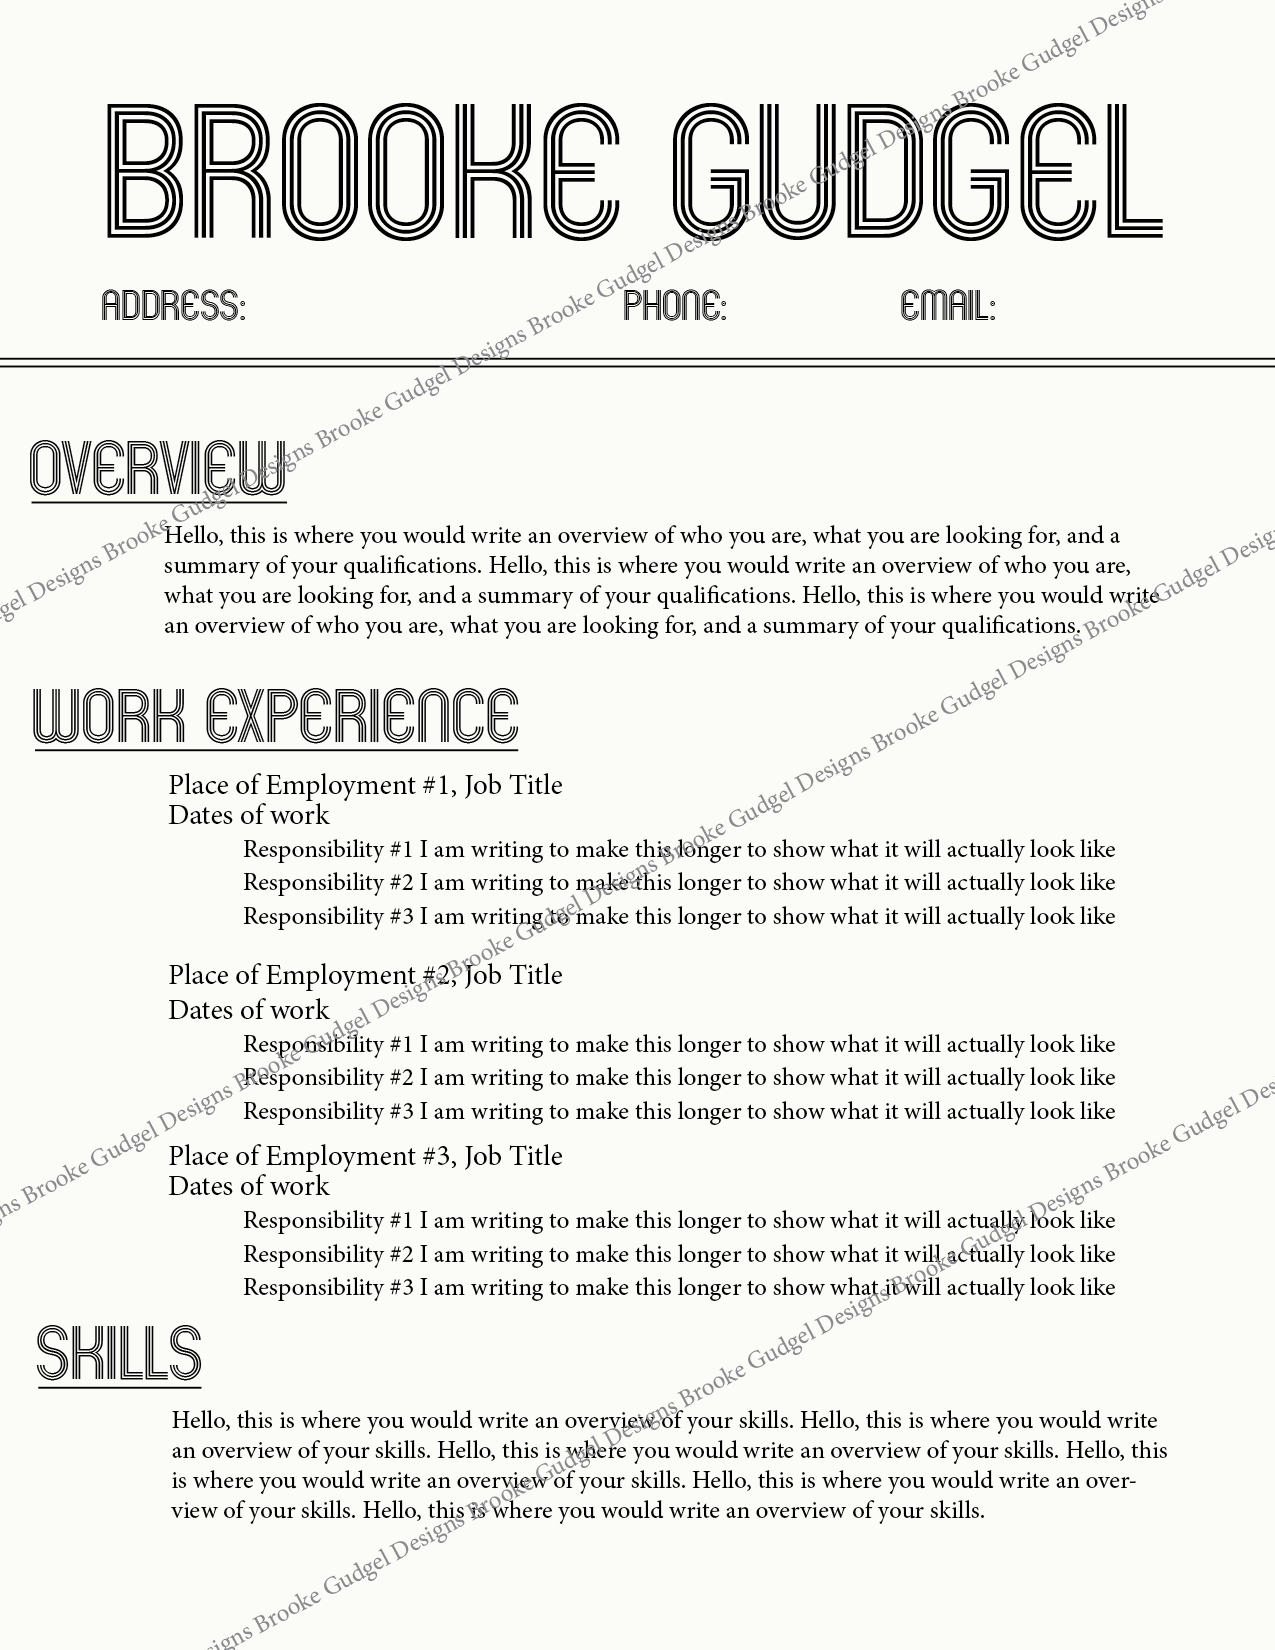 Retro Resume, contact: brookegudgel@gmail.com #rush #sorority ...